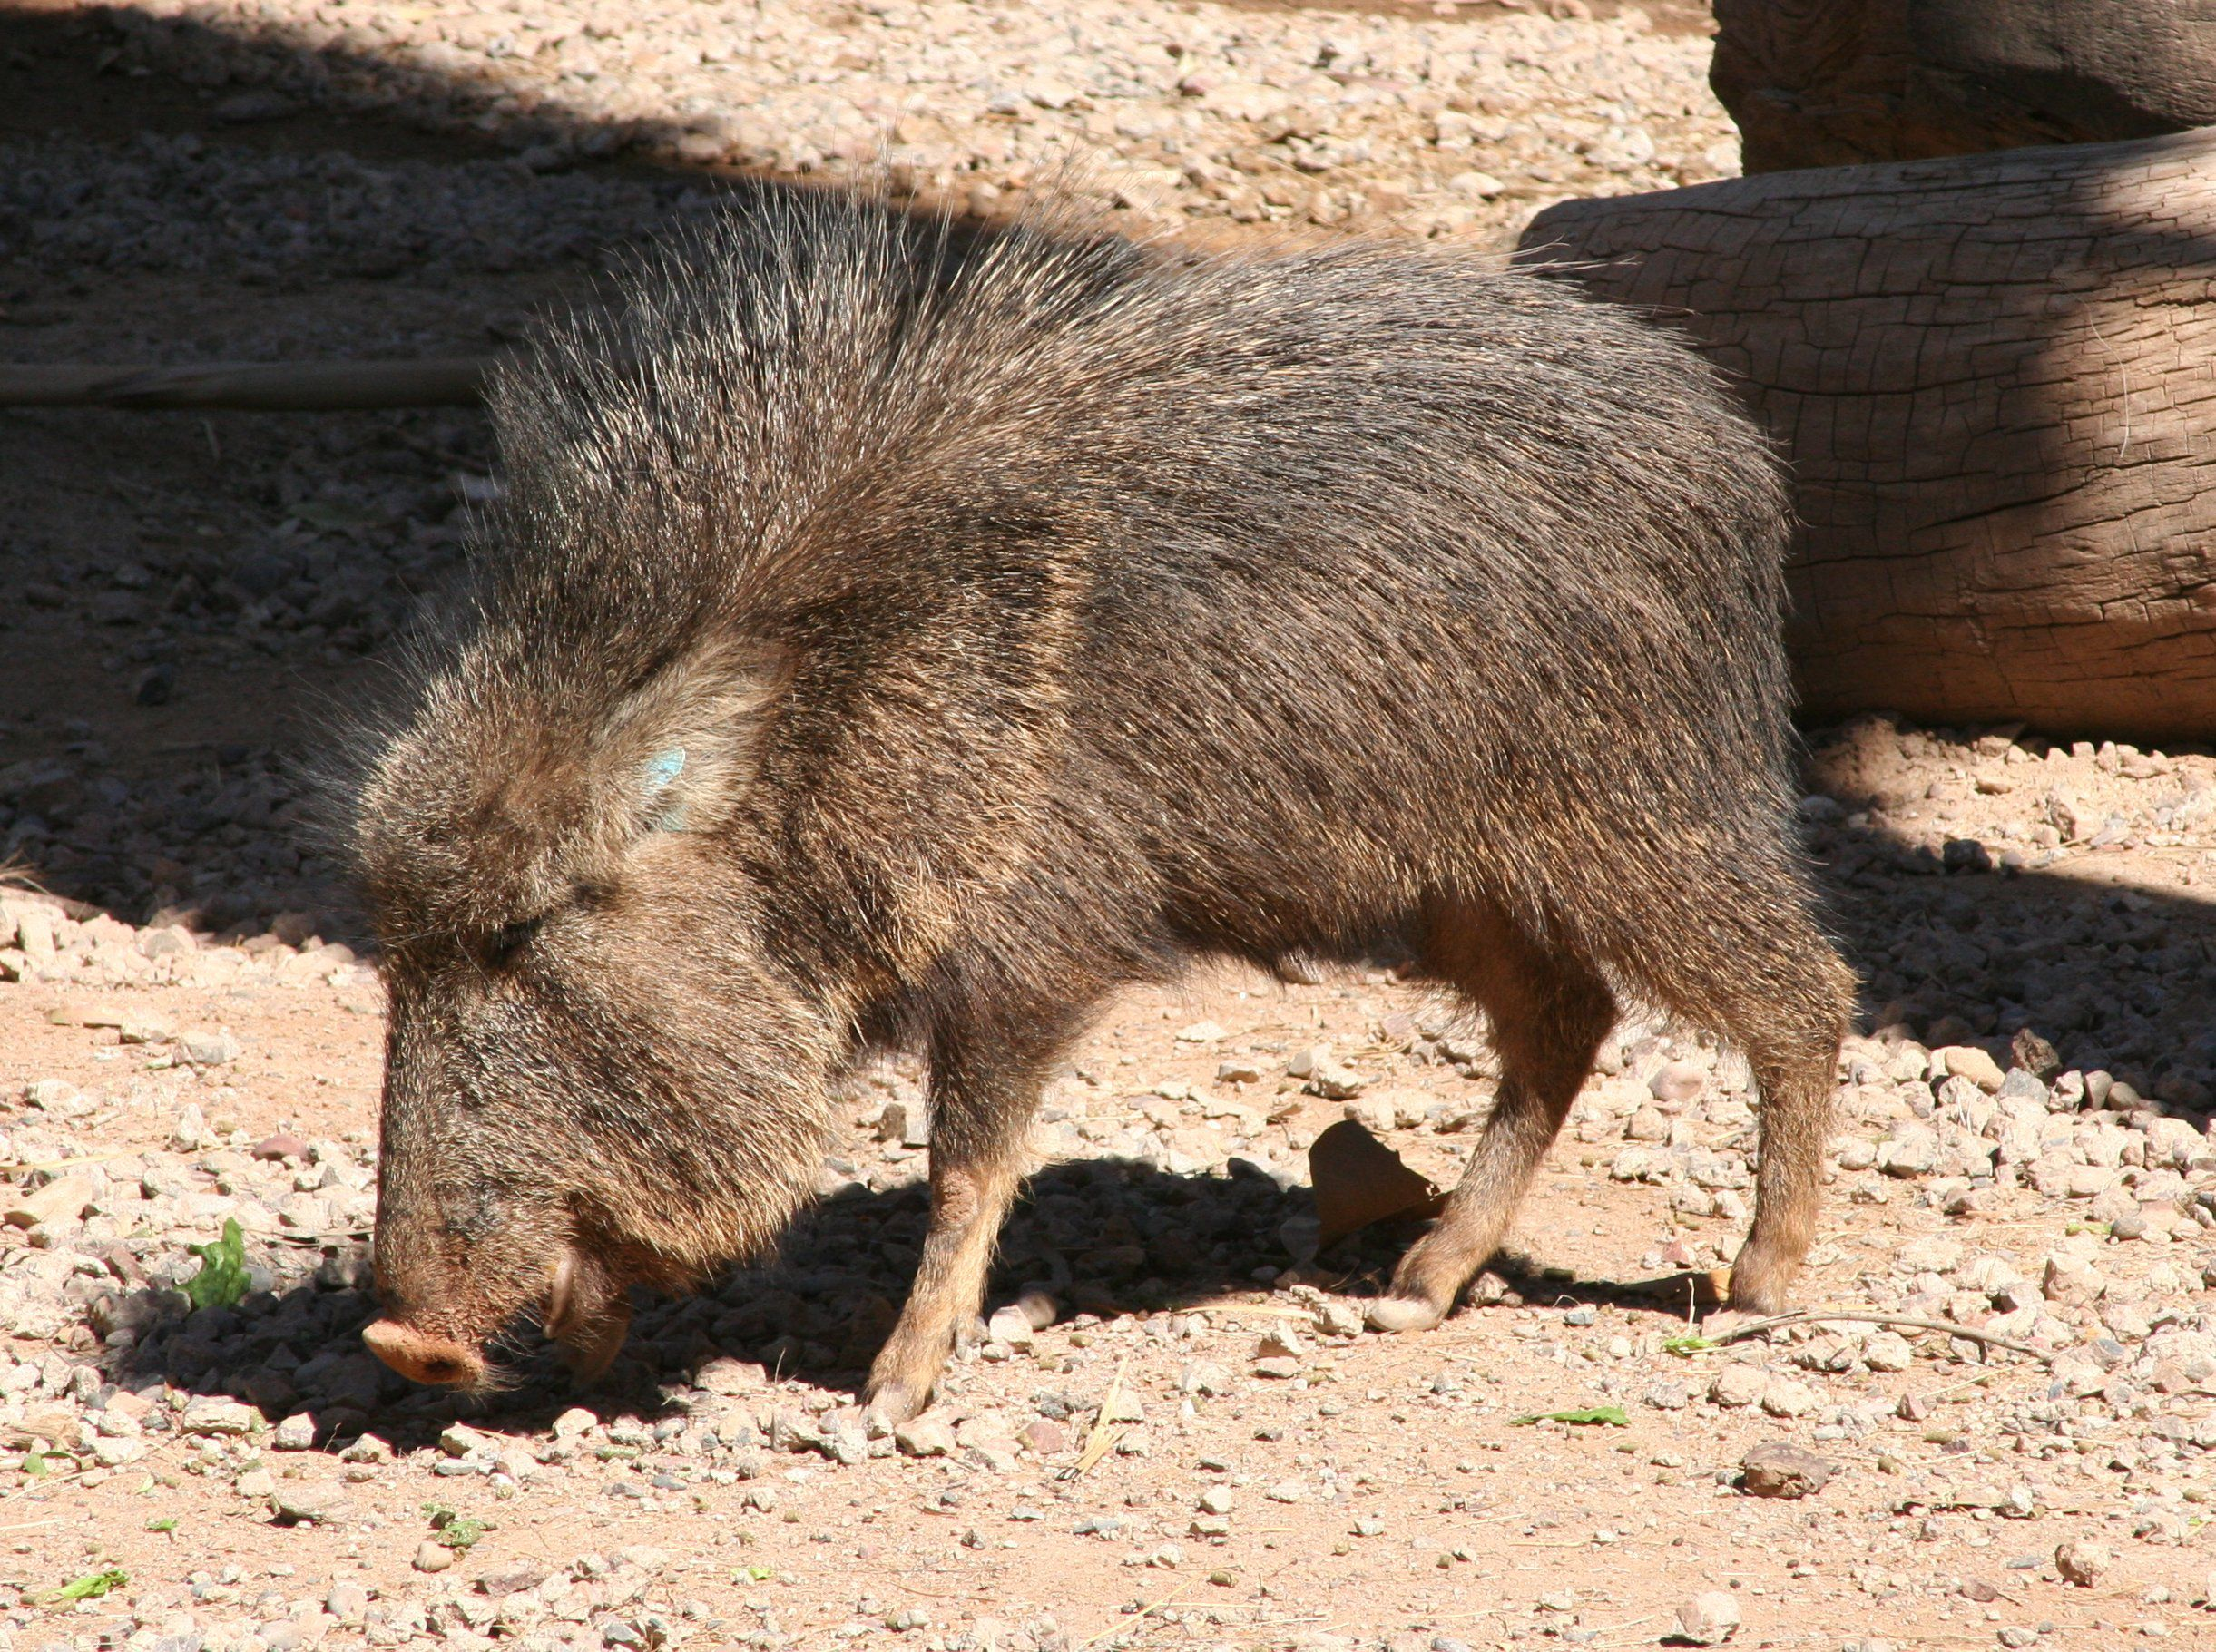 A Chacoan peccary sniffs the ground for food.